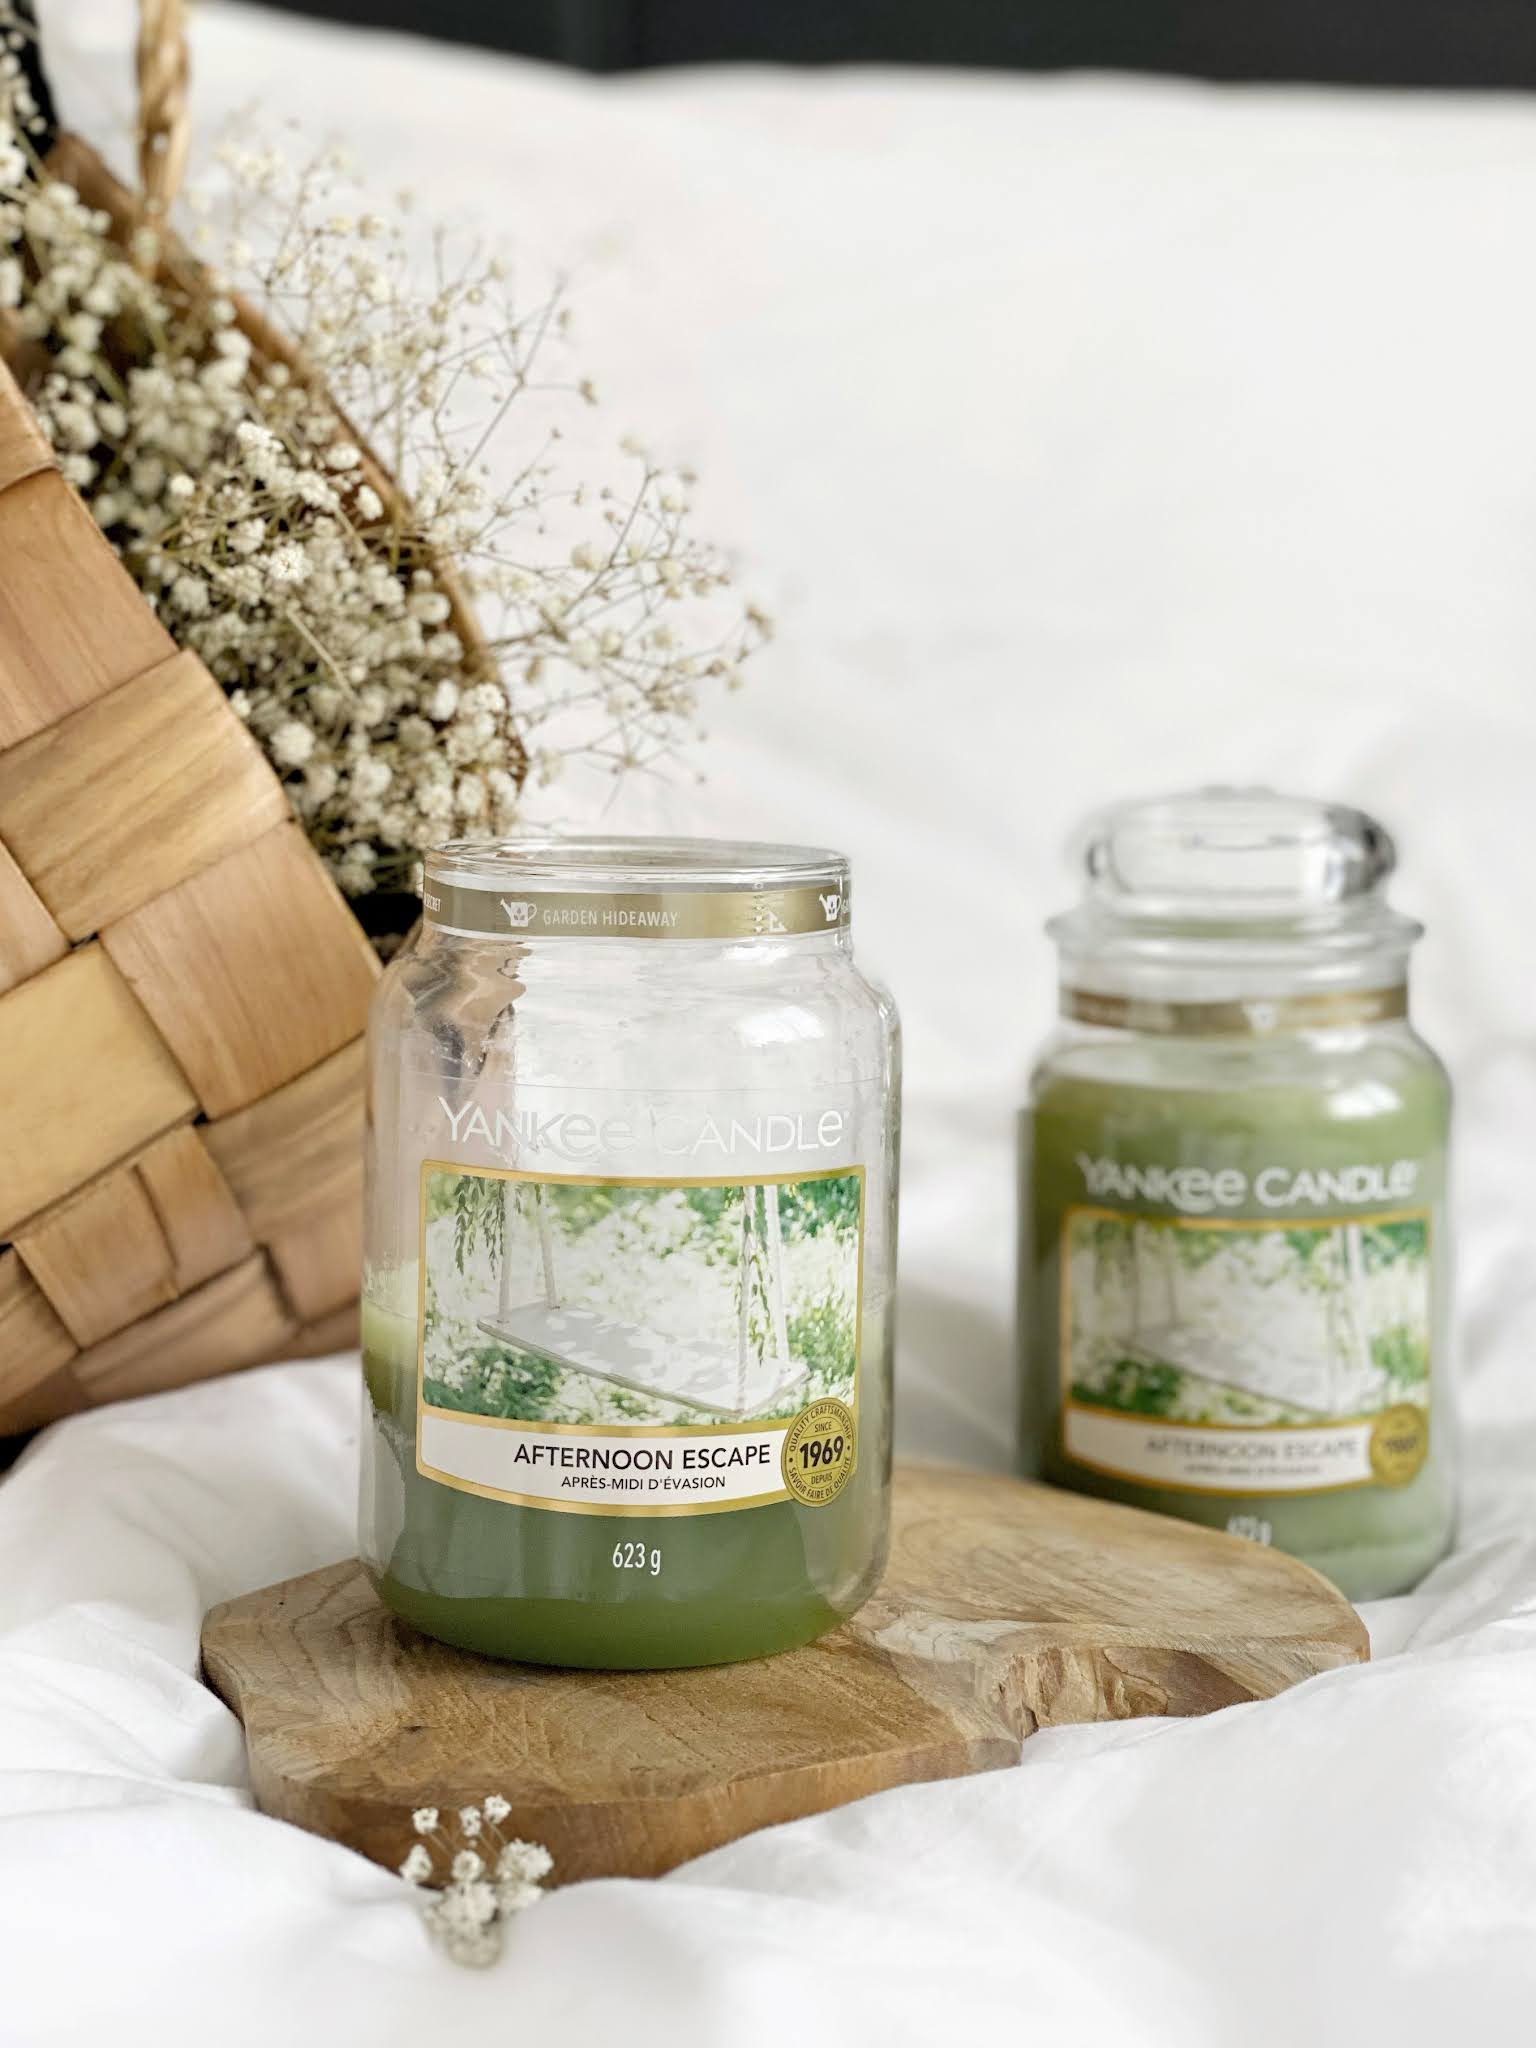 Afternoon-Escape-yankee-candle